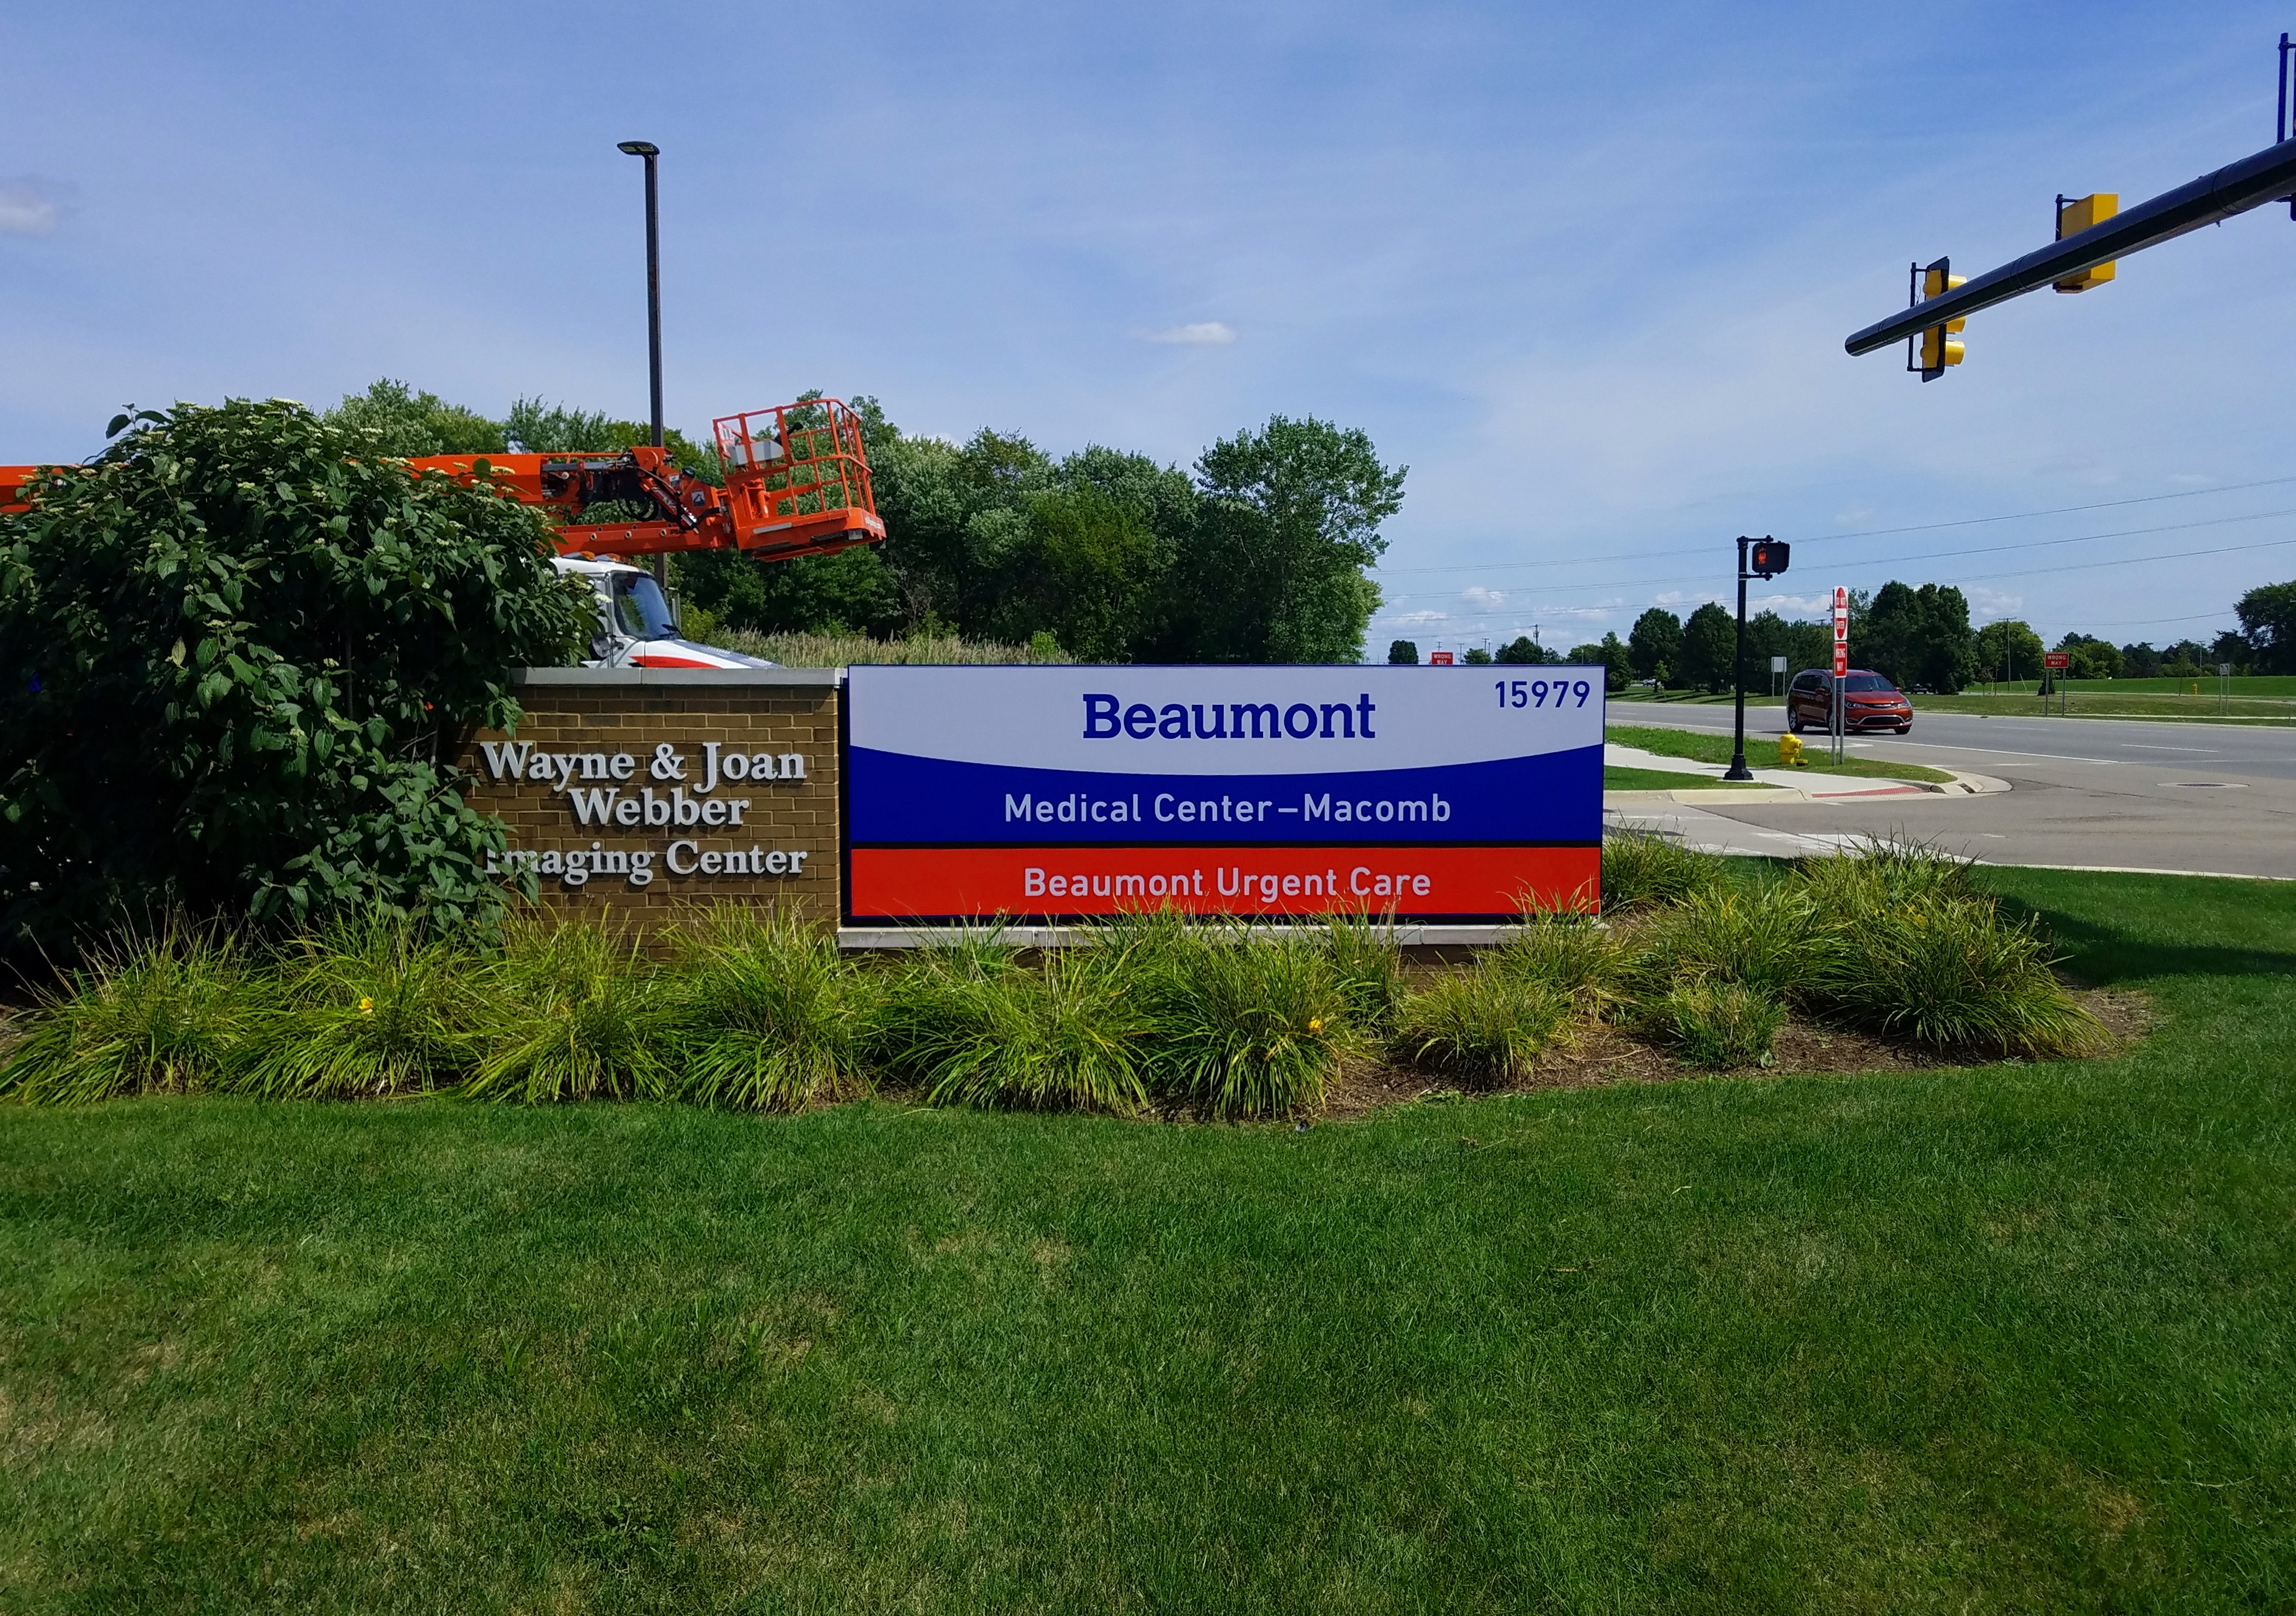 Beaumont Urgent Care - Monument Sign face change in Macomb Twp.